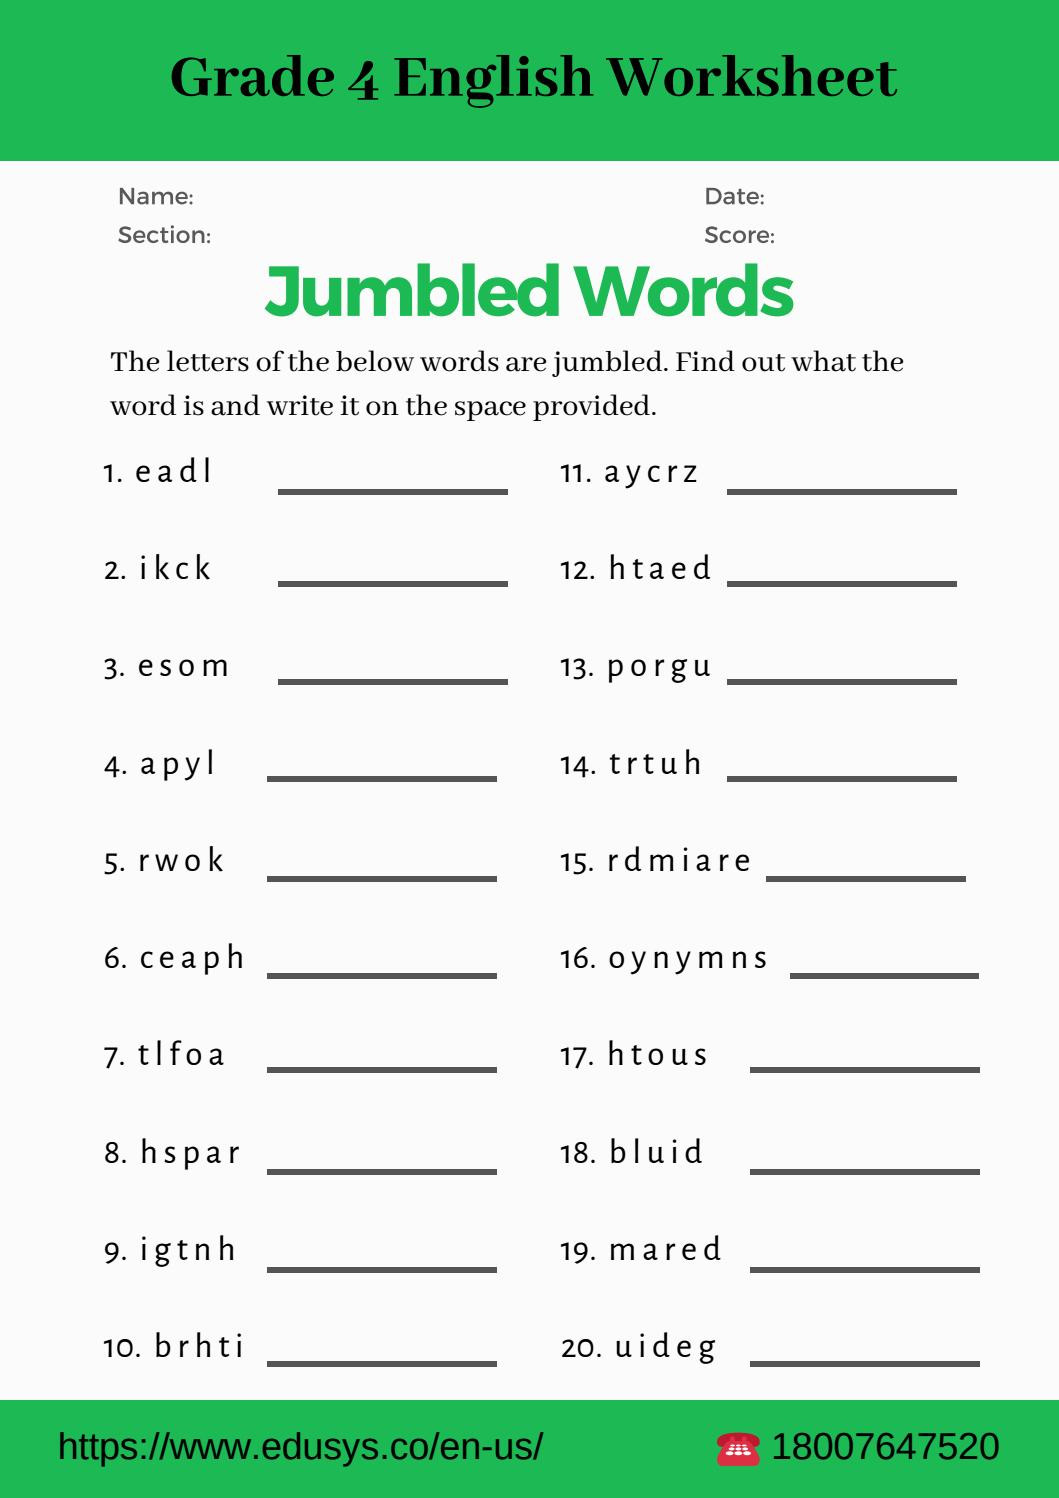 4th Grade Vocabulary Worksheets Pdf 4th Grade English Vocabulary Worksheet Pdf by Nithya issuu